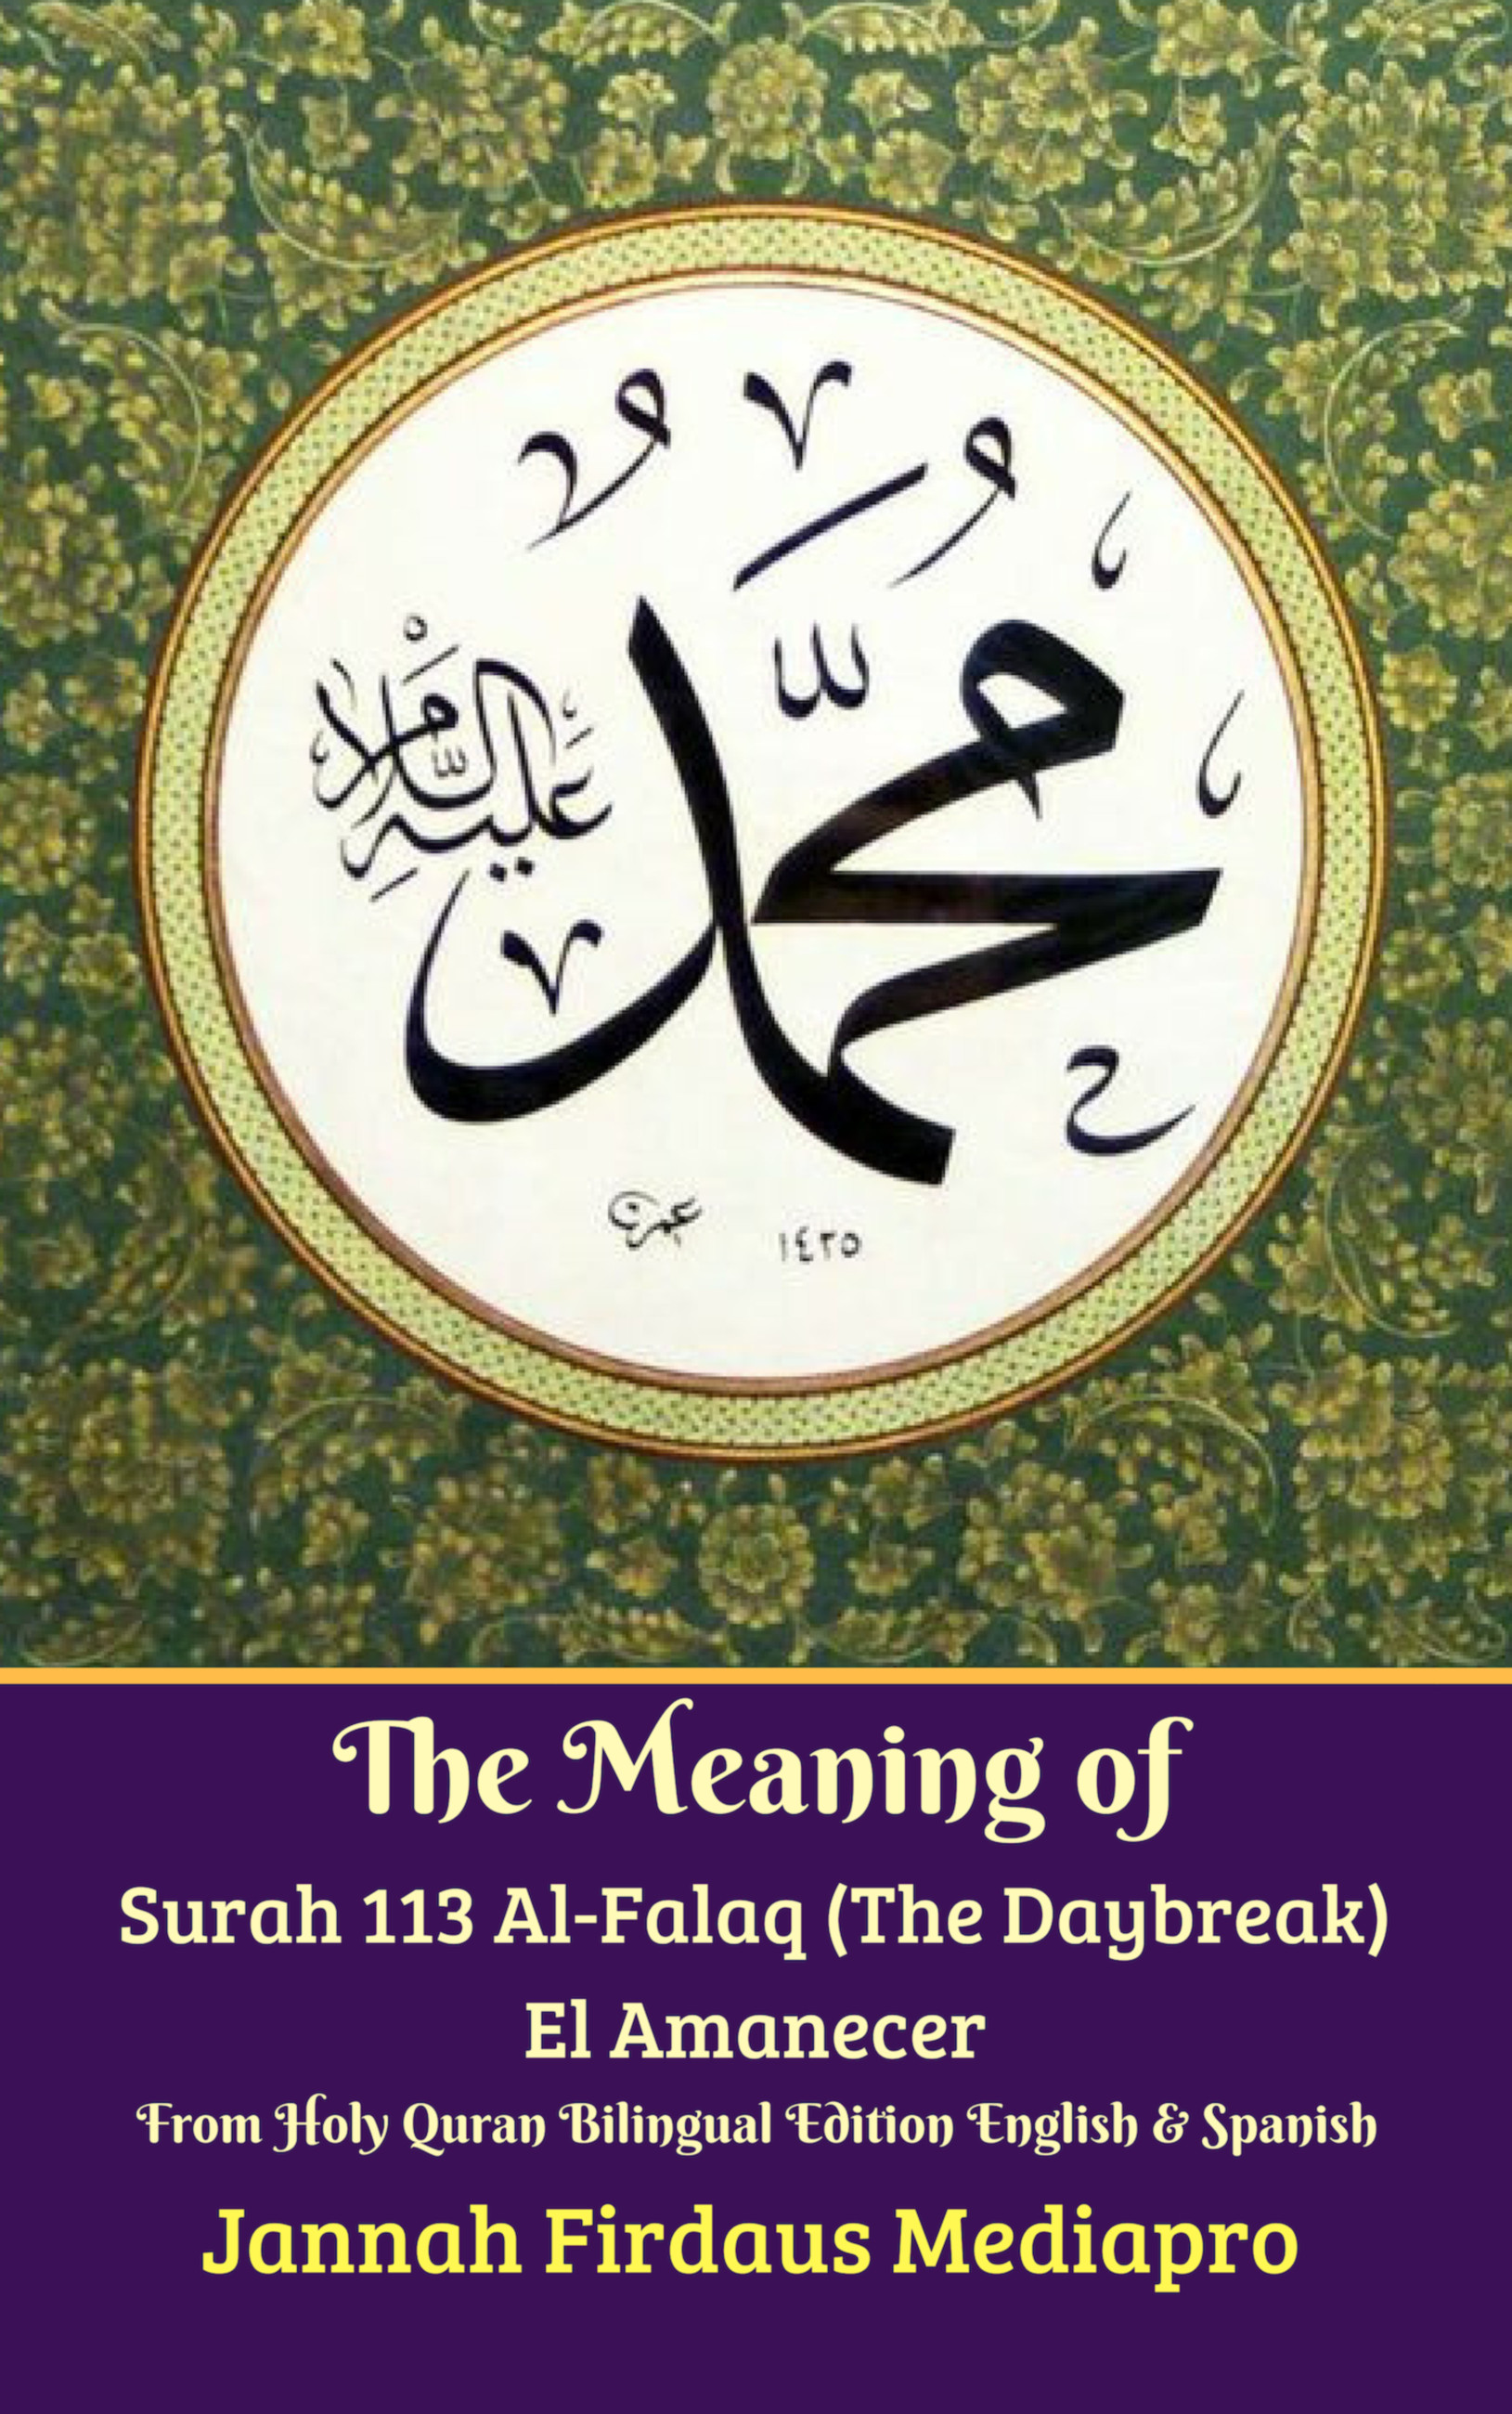 The Meaning of Surah 113 Al-Falaq (The Daybreak) El Amanecer From Holy  Quran Bilingual Edition English & Spanish, an Ebook by Jannah Firdaus  Mediapro